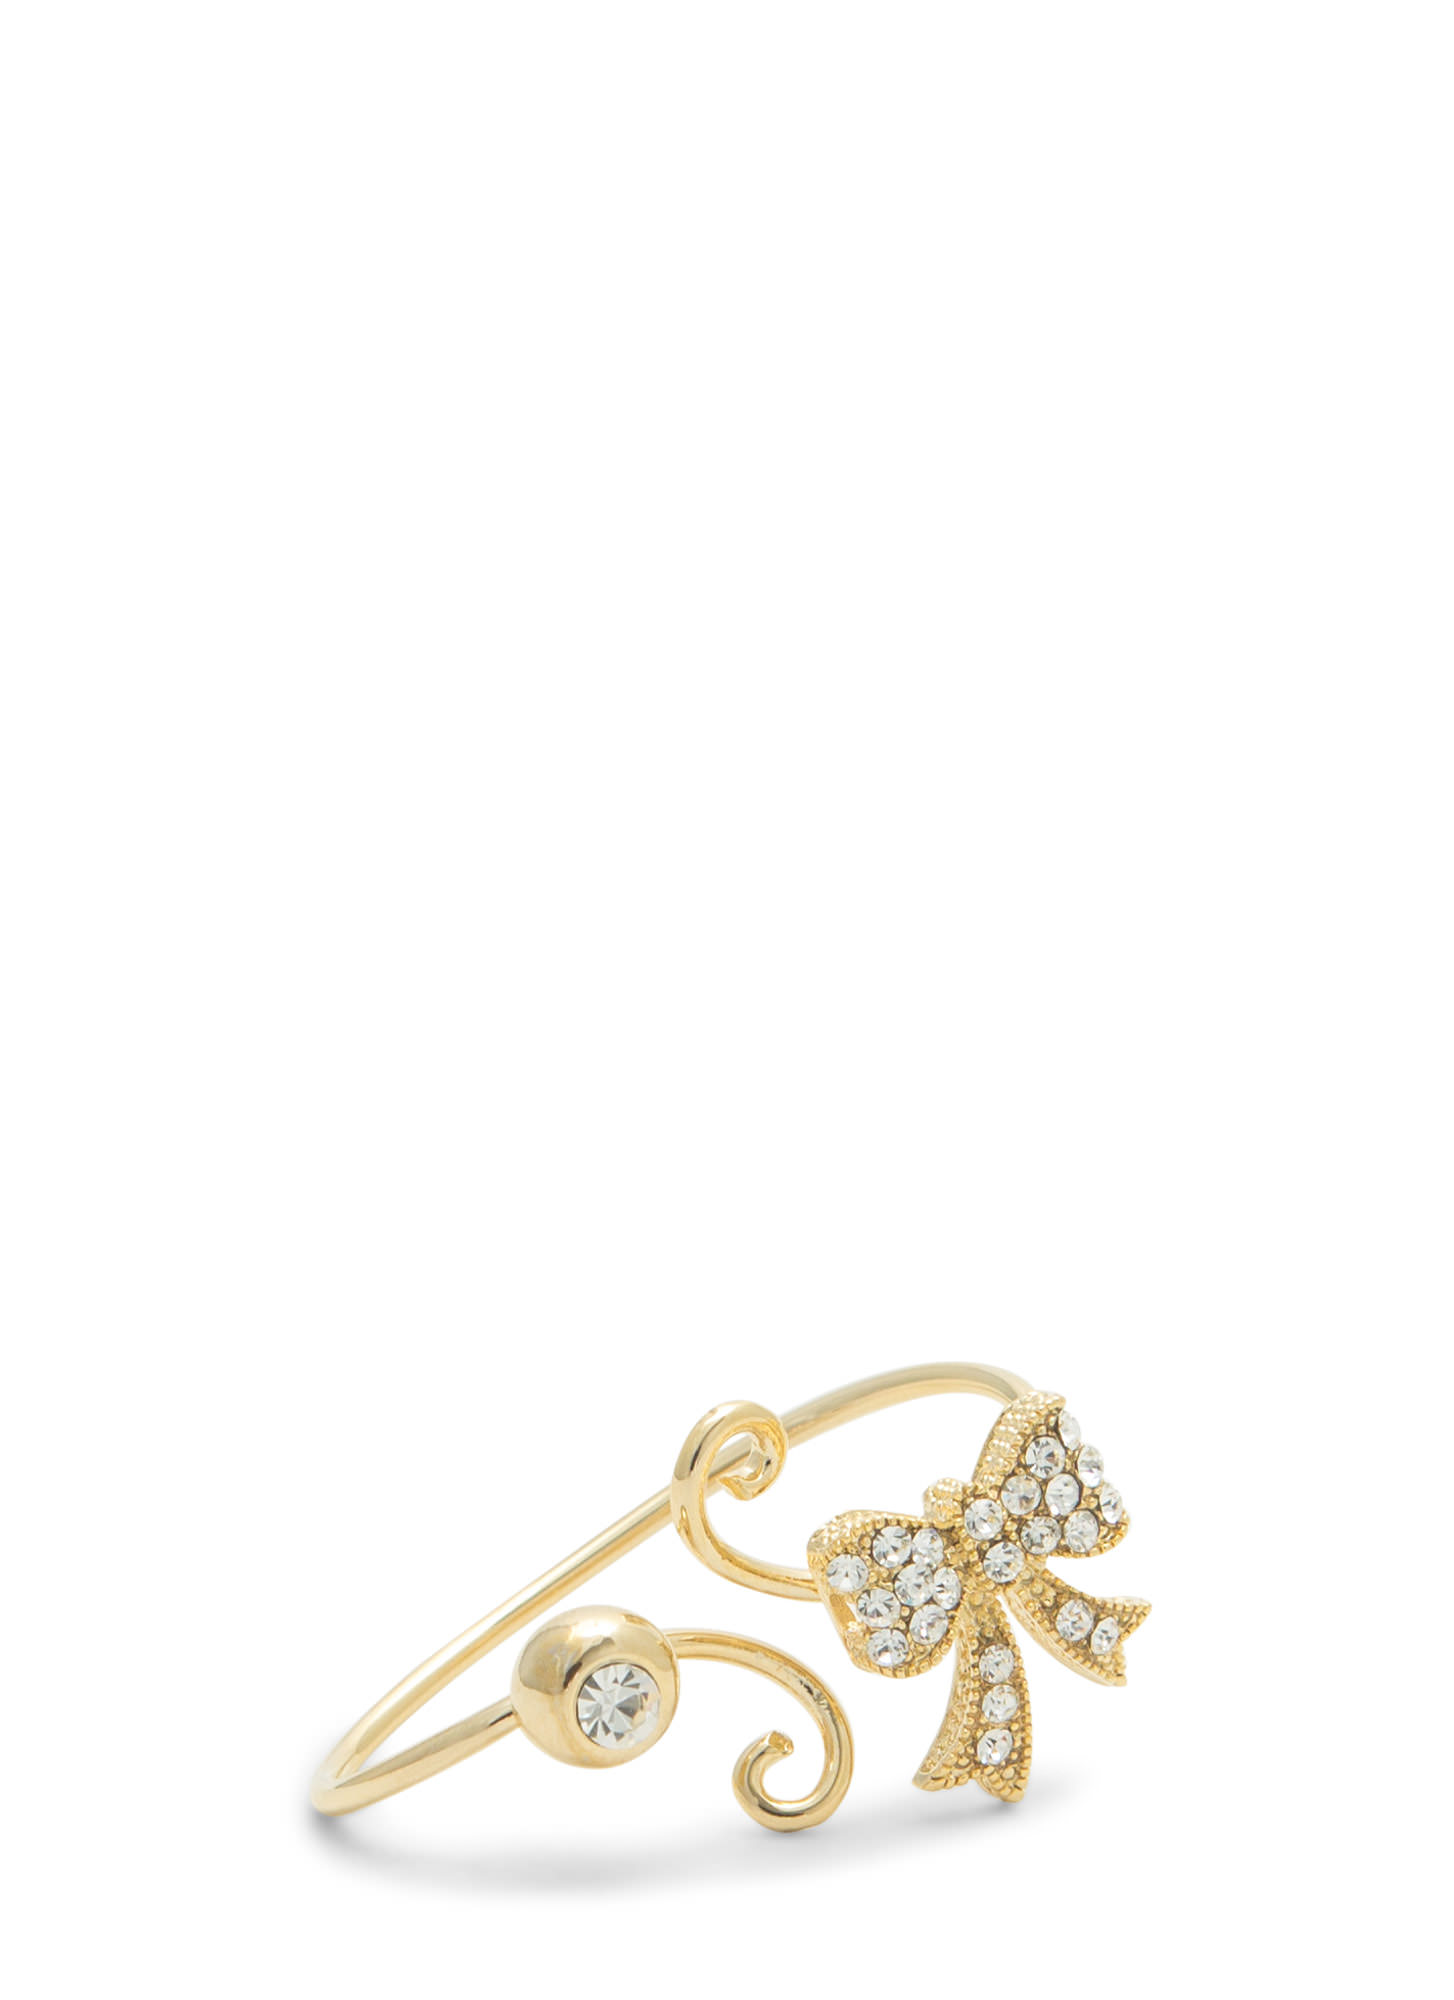 Rhinestone Bow Two-Finger Ring GOLDCLEAR